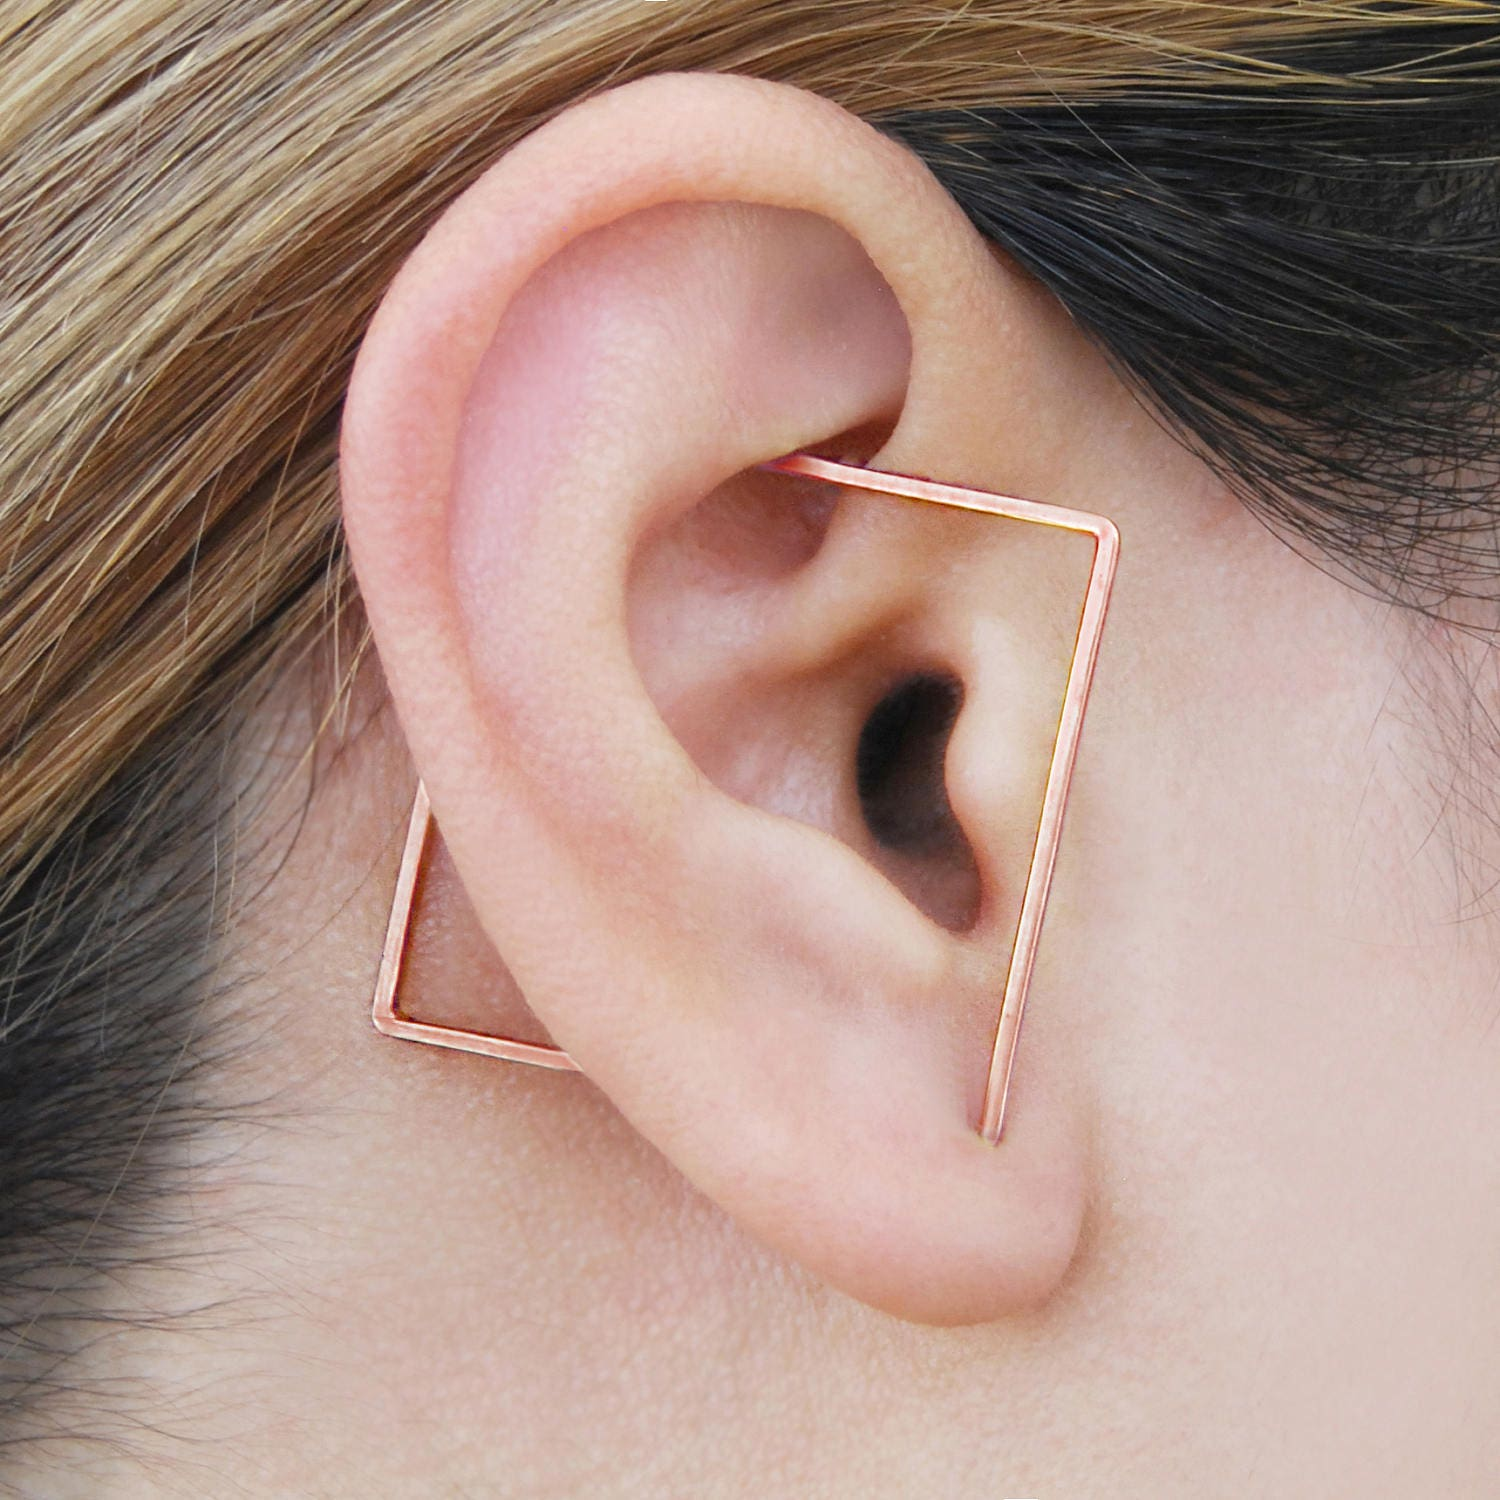 Rose Gold Ear Cuff Square Hoop Earrings Square Ear Cuff   Etsy